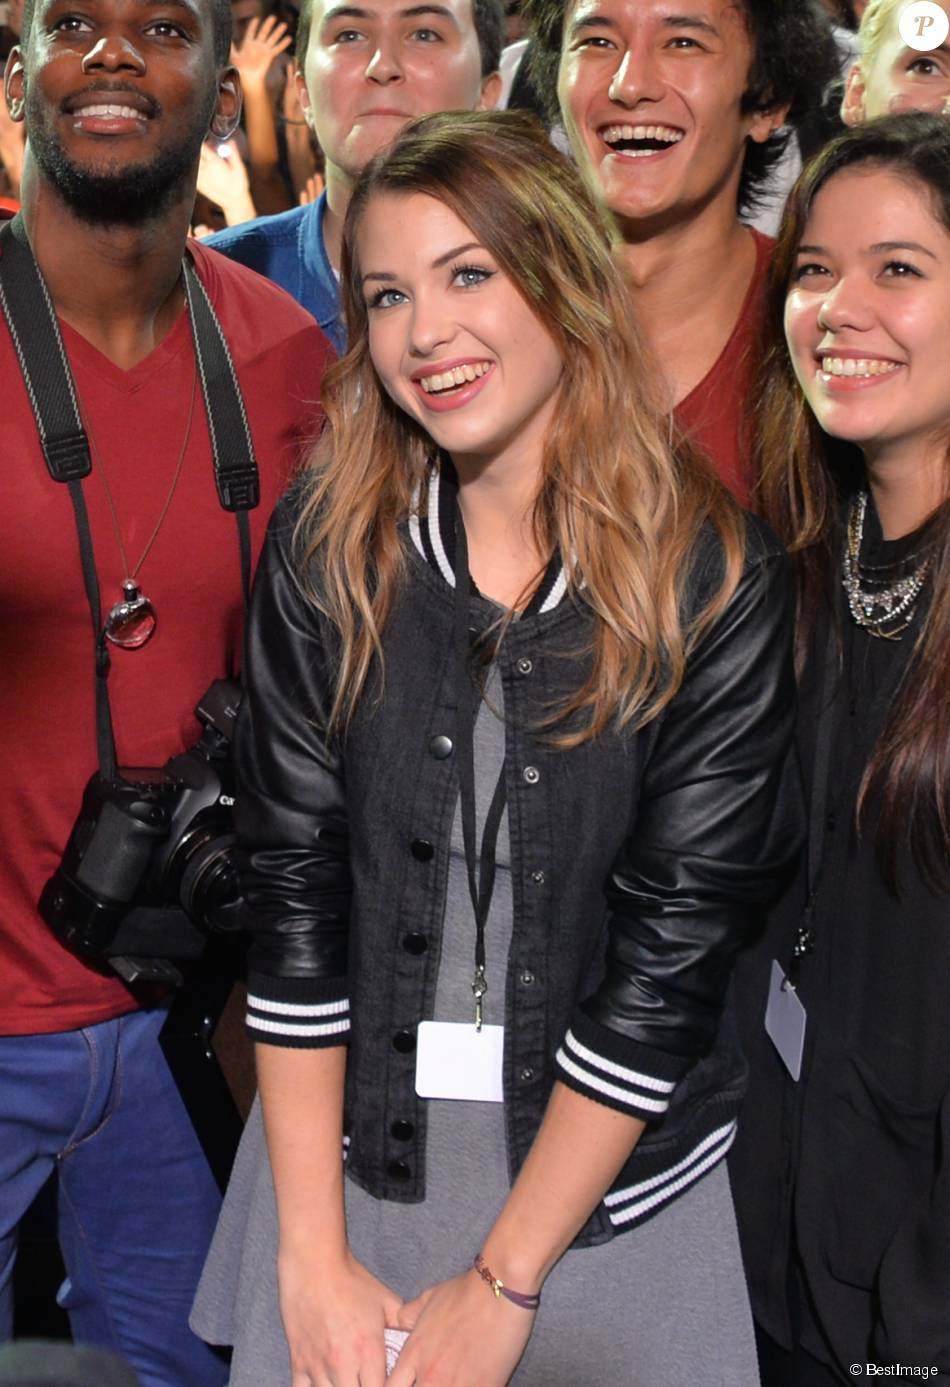 Exclusif - EnjoyPhoenix (Marie Lopez) rencontre ses fans lors du salon Video City, à Paris, le 7 novembre 2015.